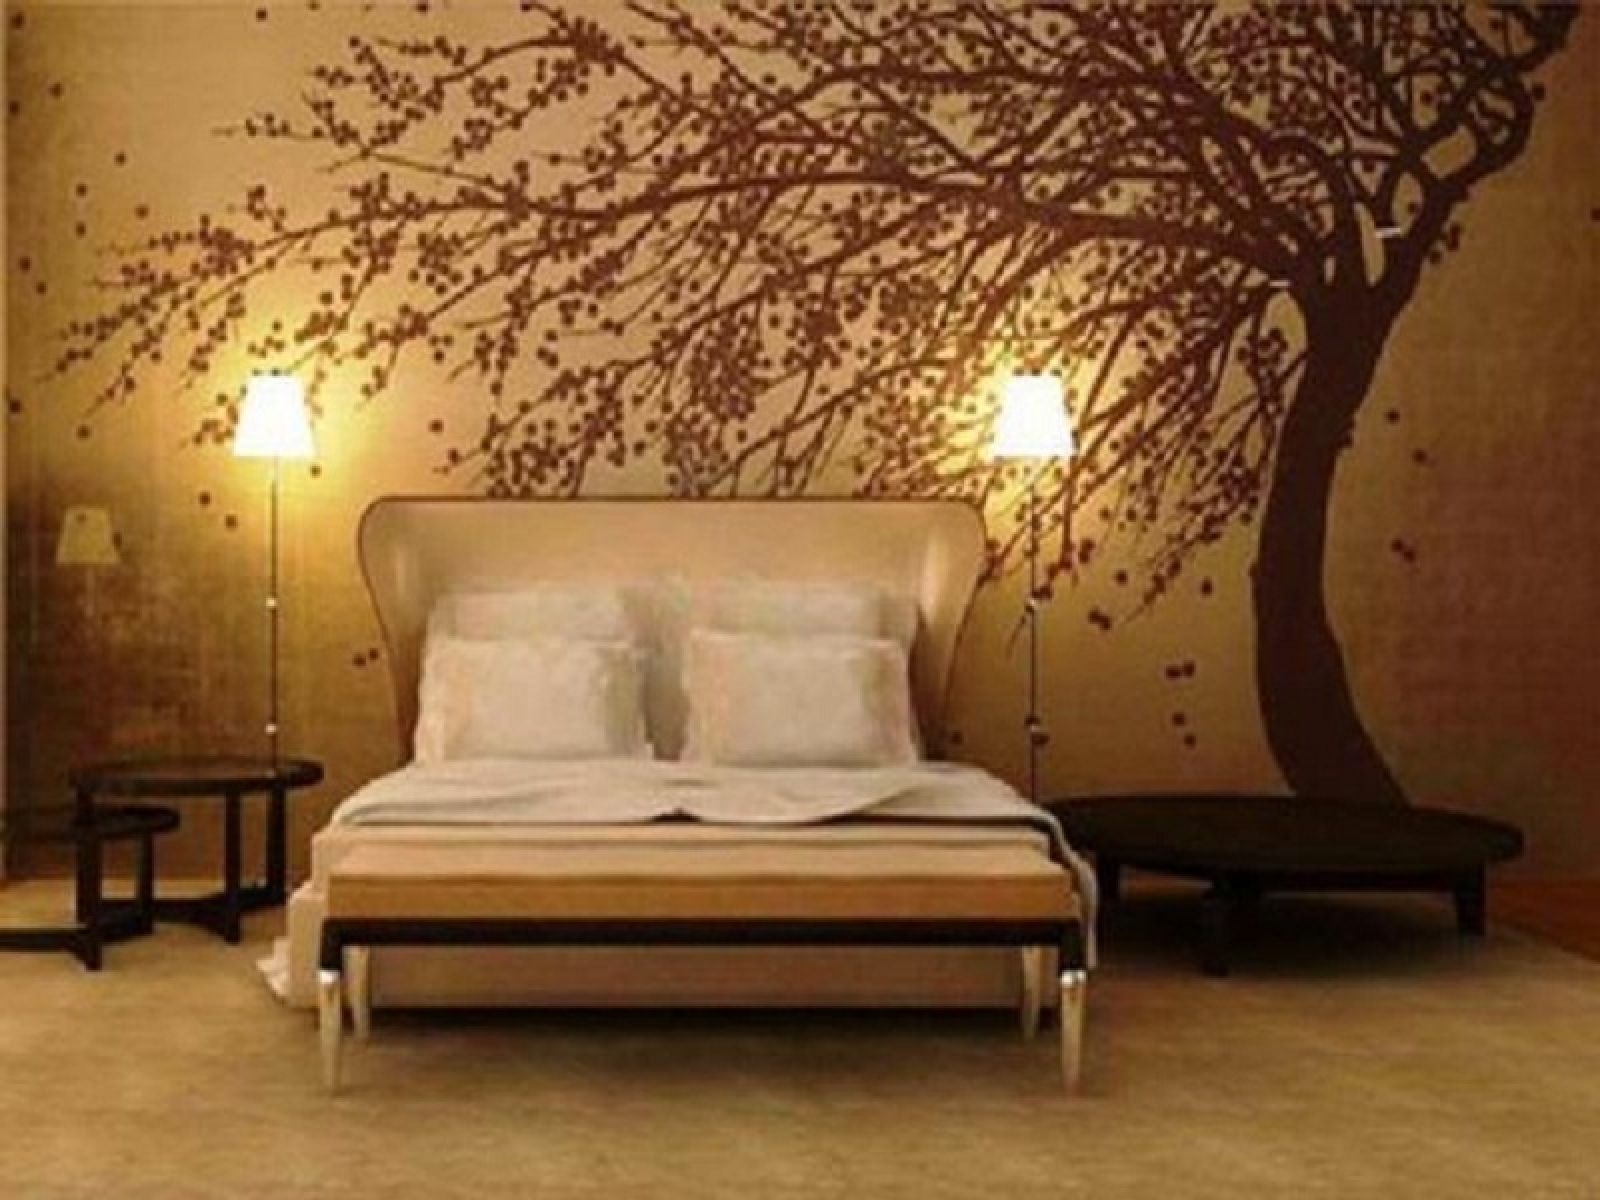 30 Best Wallpaper Designs for Bedrooms UK 2015 #bedroomwallapers ...